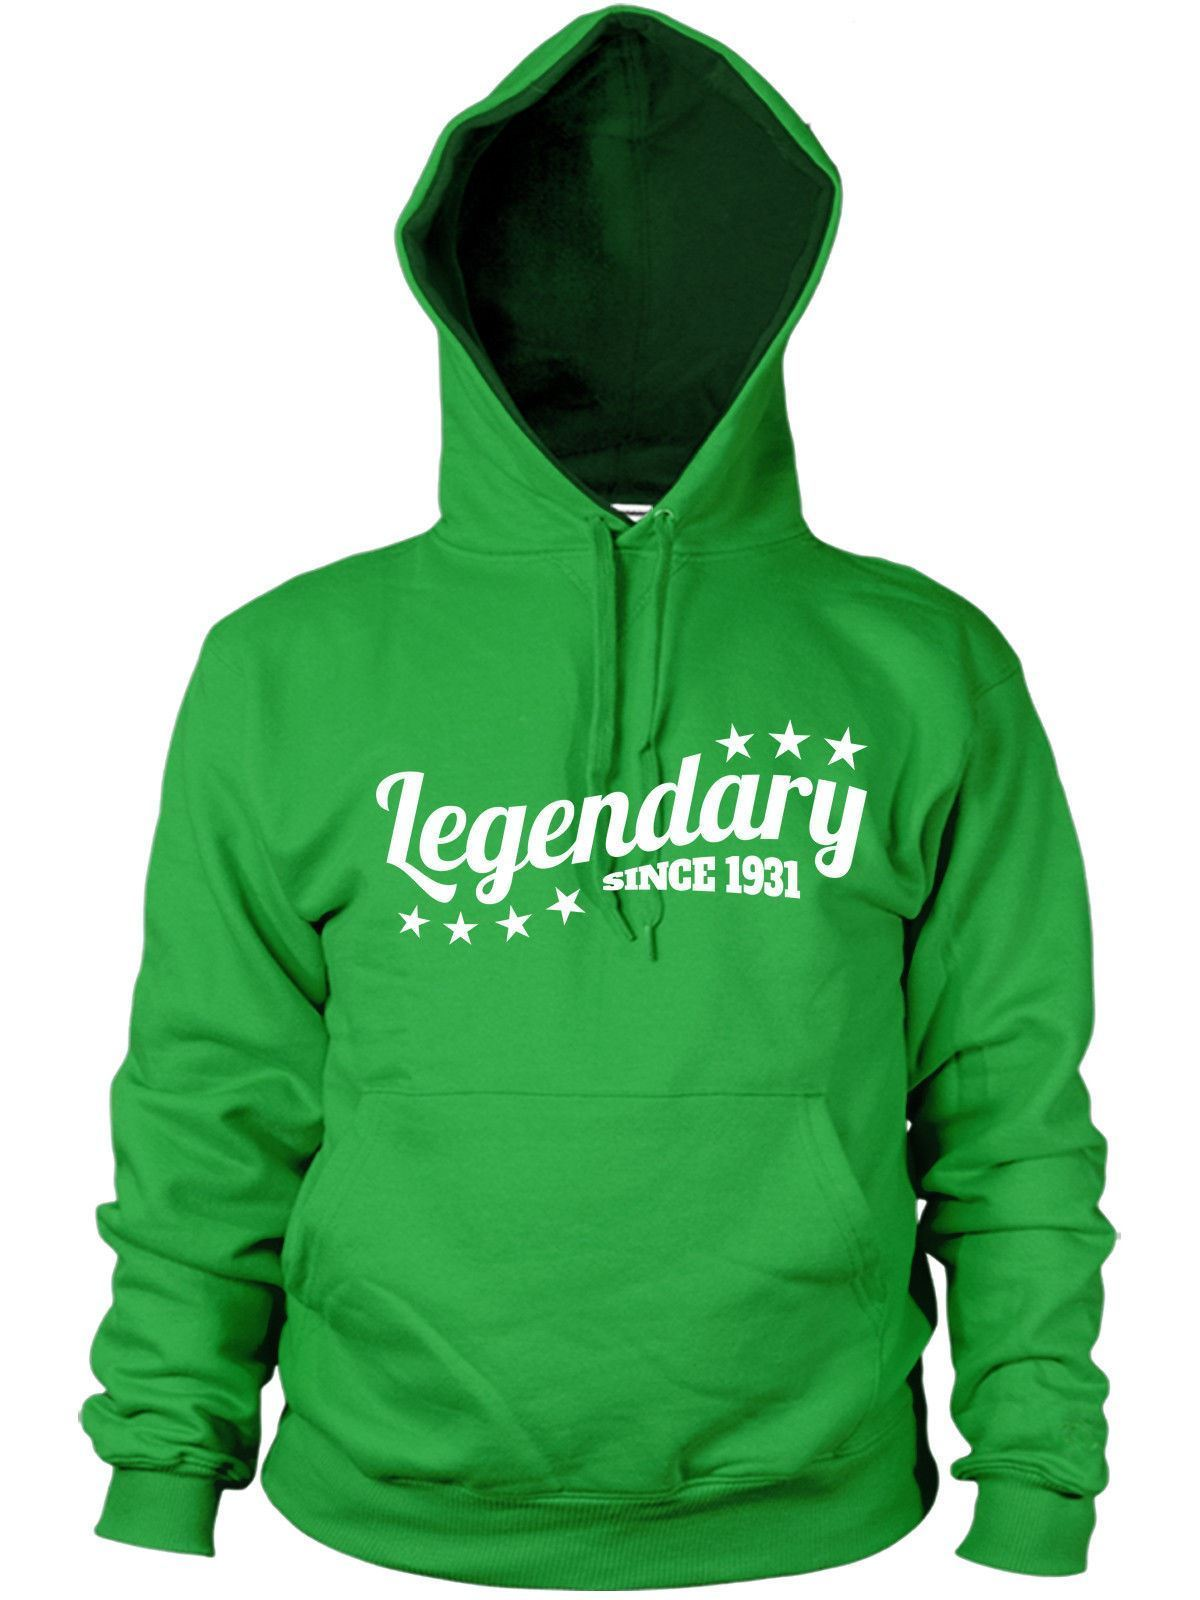 Legendary Since 1931 Hoodie Birthday 85 86 Years Old Present Gift Men Women Dad